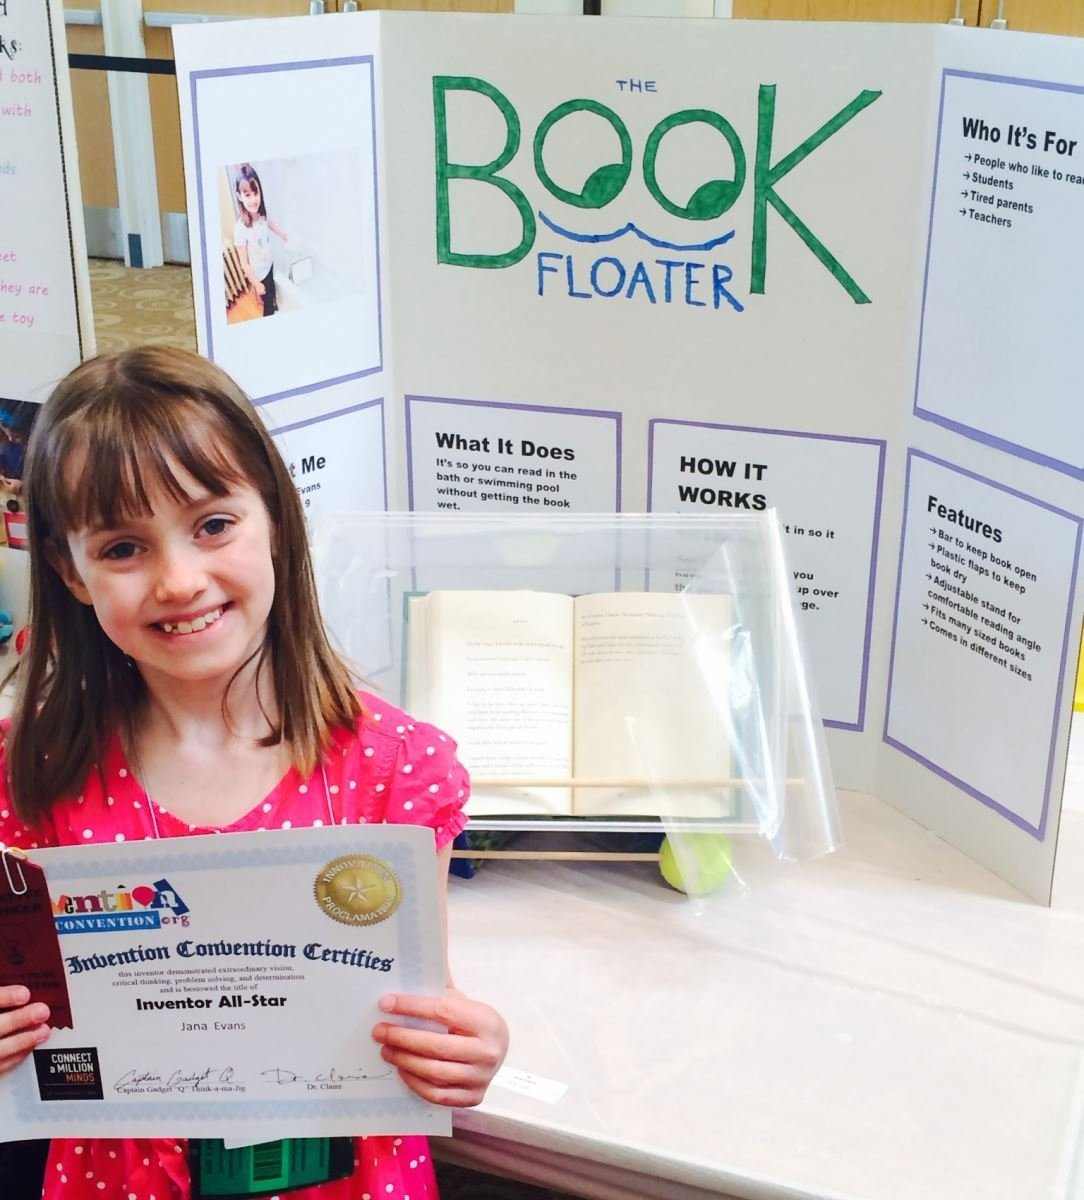 10 Attractive Kid Invention Ideas For School invention convention winner lincoln elementary school 2021